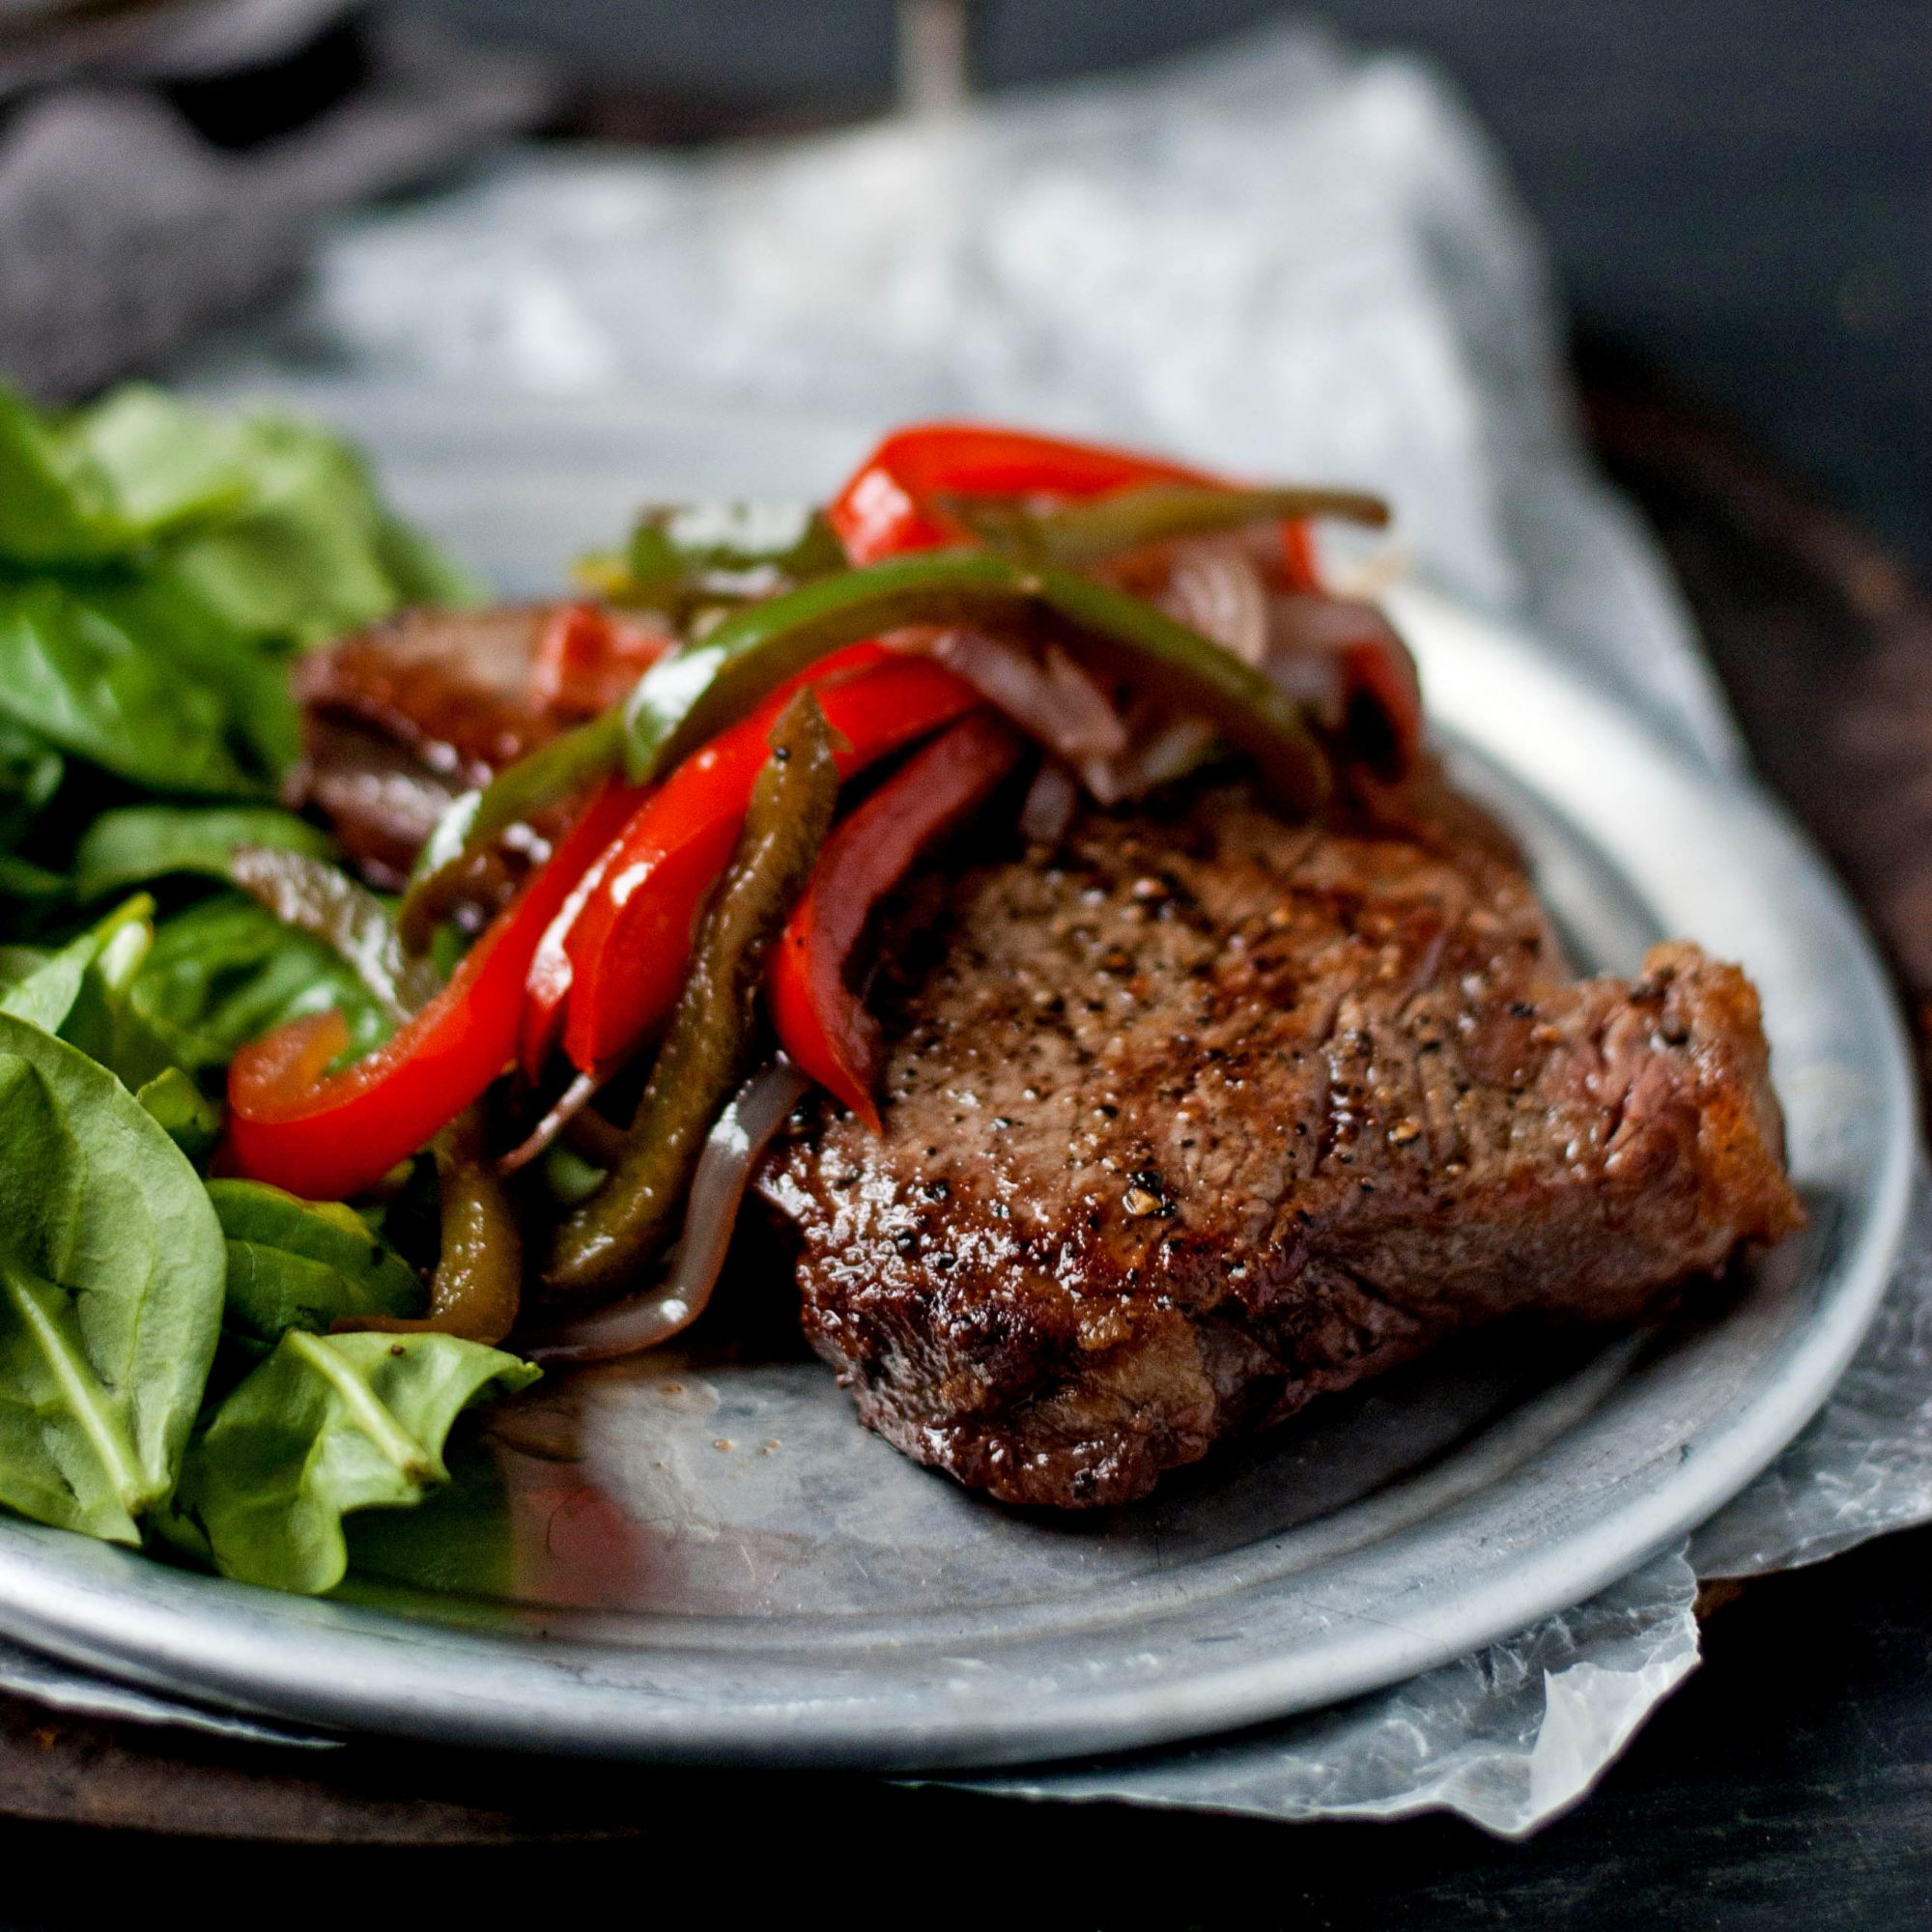 Sautéed Steaks with Red Wine and Peppers